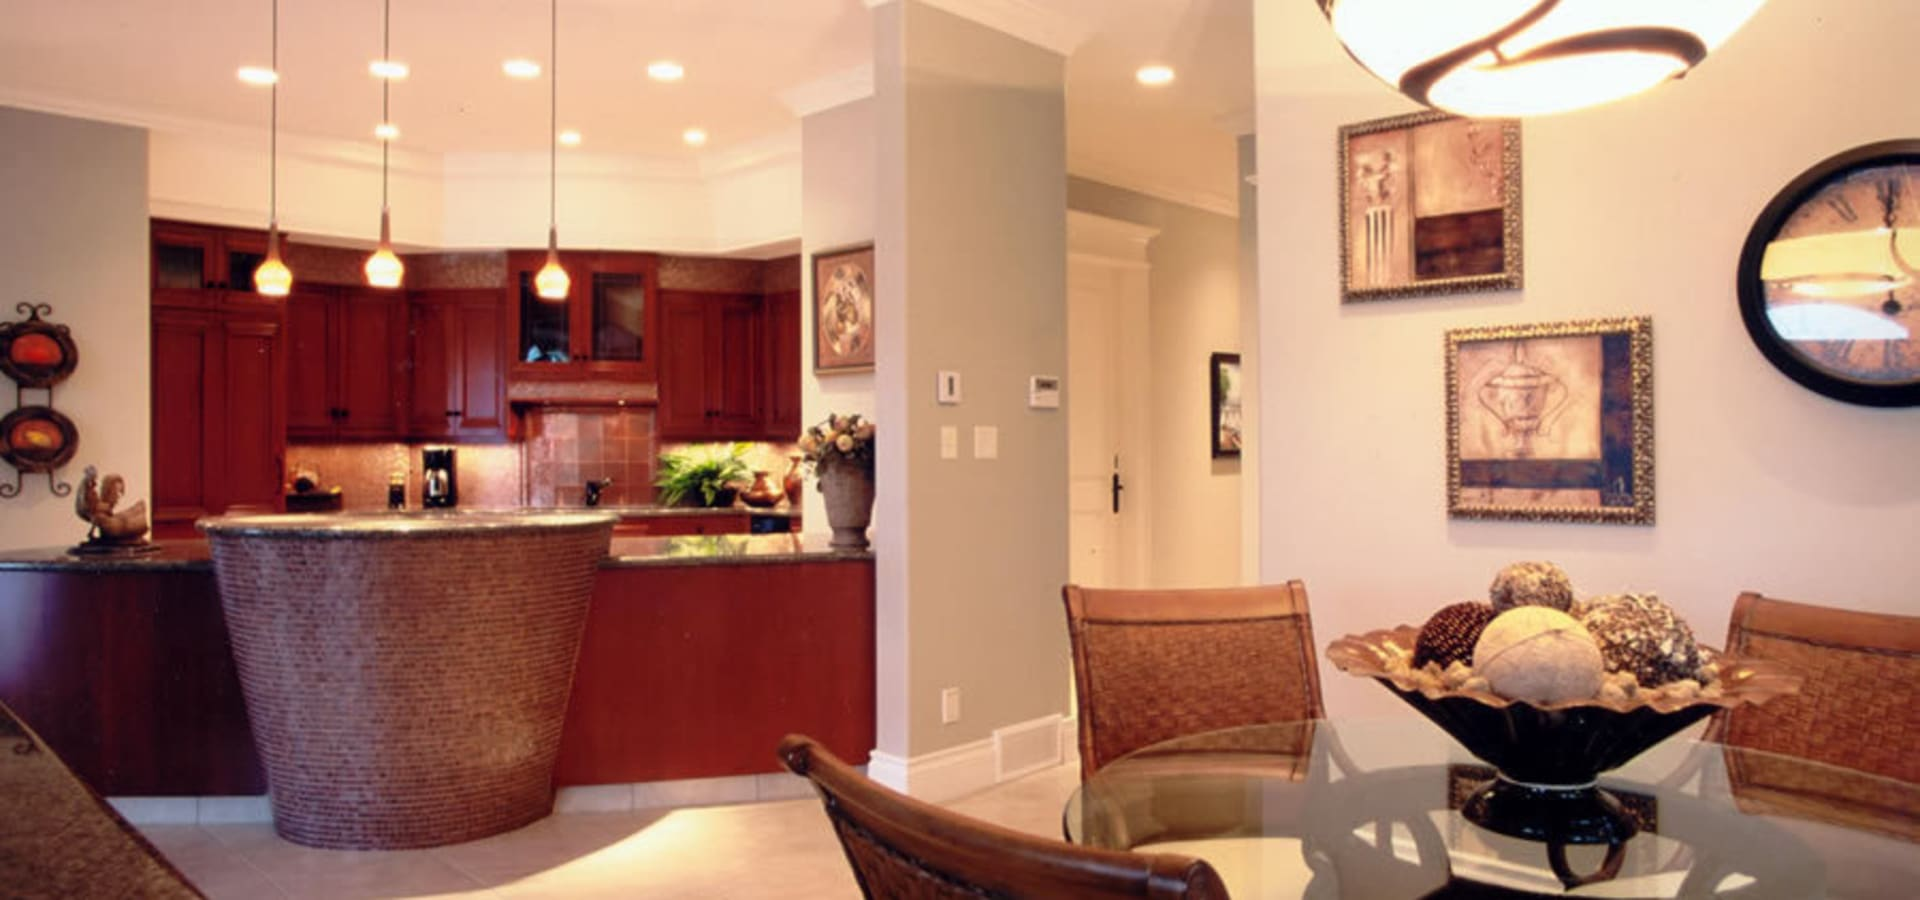 JWA Design Interior Designers Decorators in Calgary homify